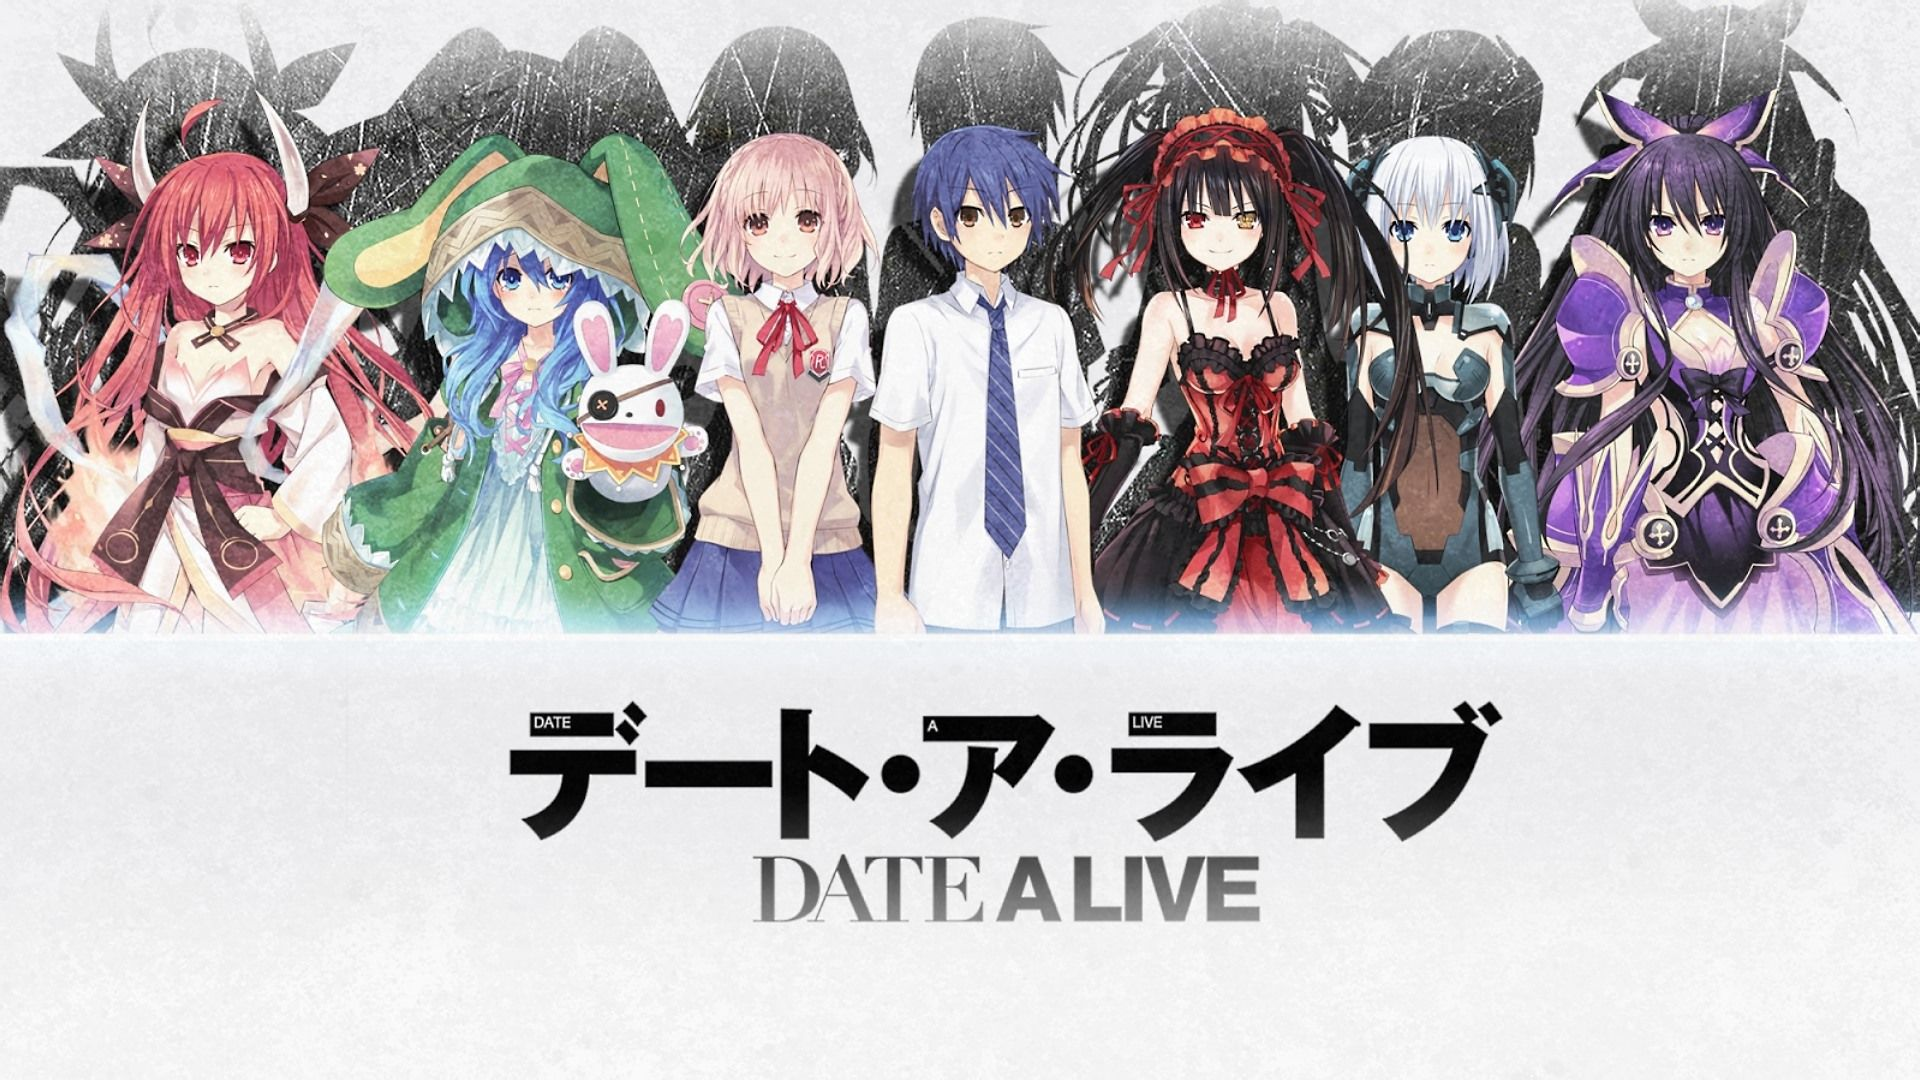 Date A Live images Date a Live background HD wallpaper and background ...